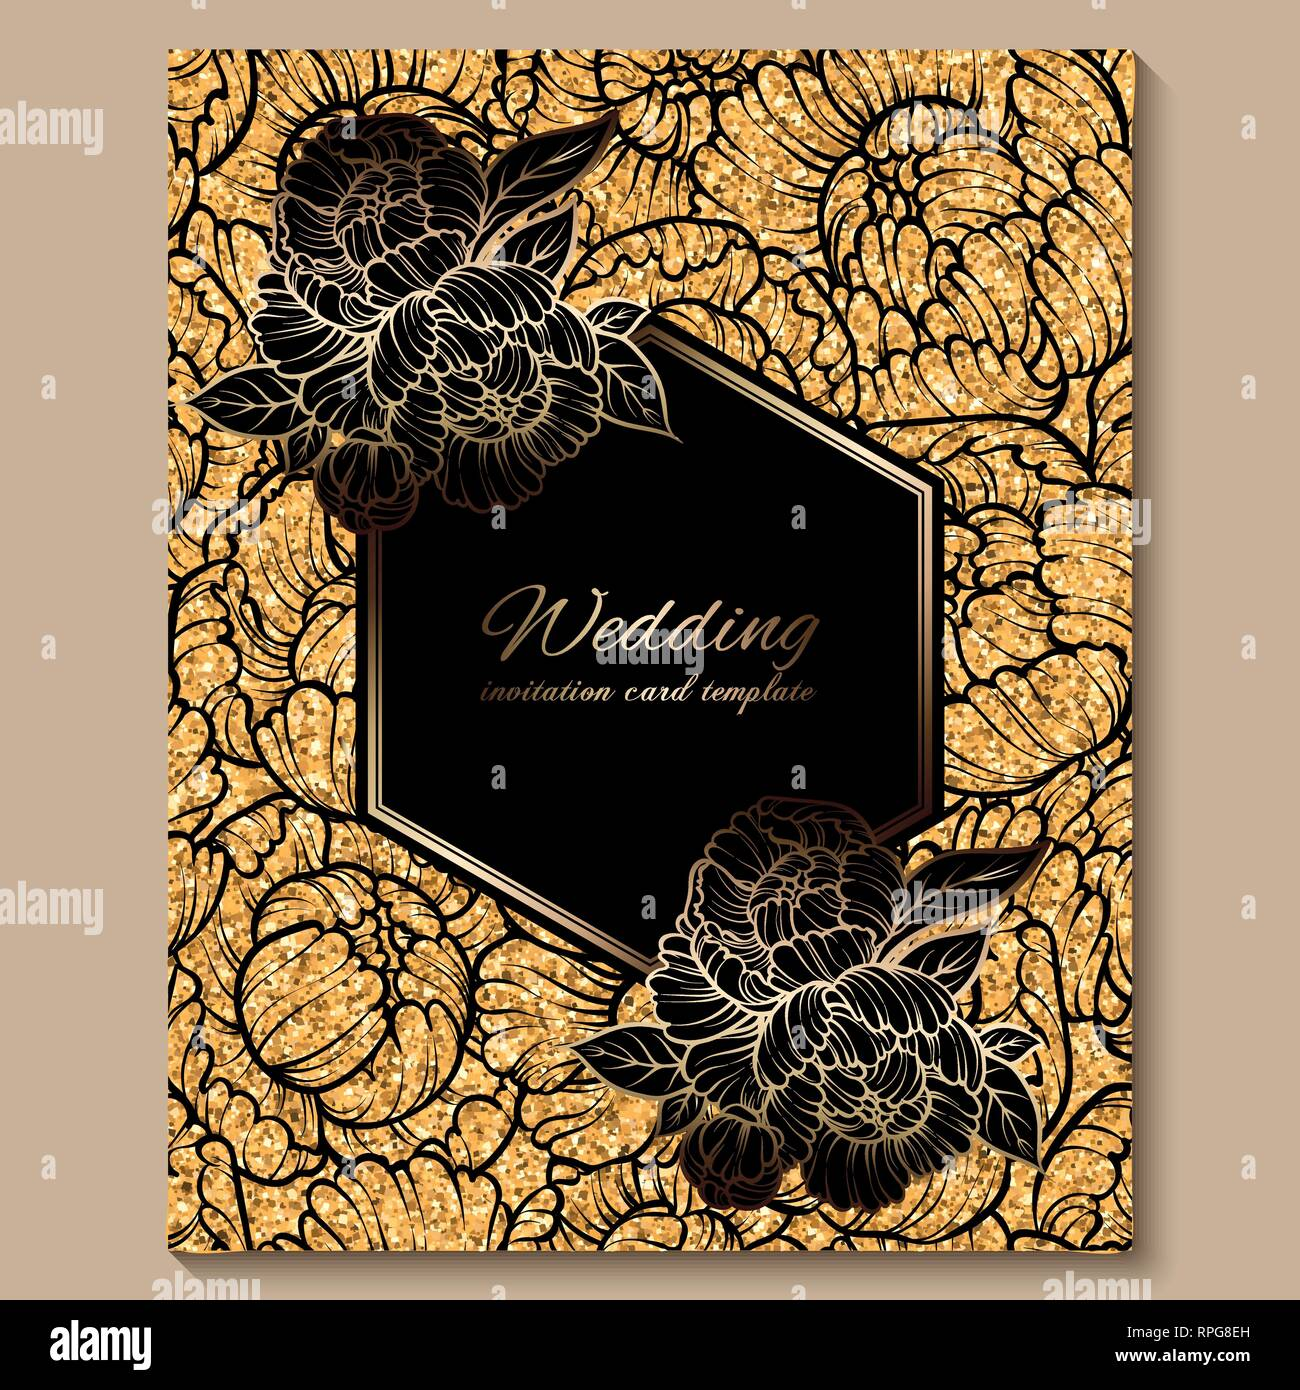 Antique royal luxury wedding invitation card, golden glitter background  with frame and place for text, black lacy foliage made of roses or peonies  Stock Vector Image & Art - Alamy